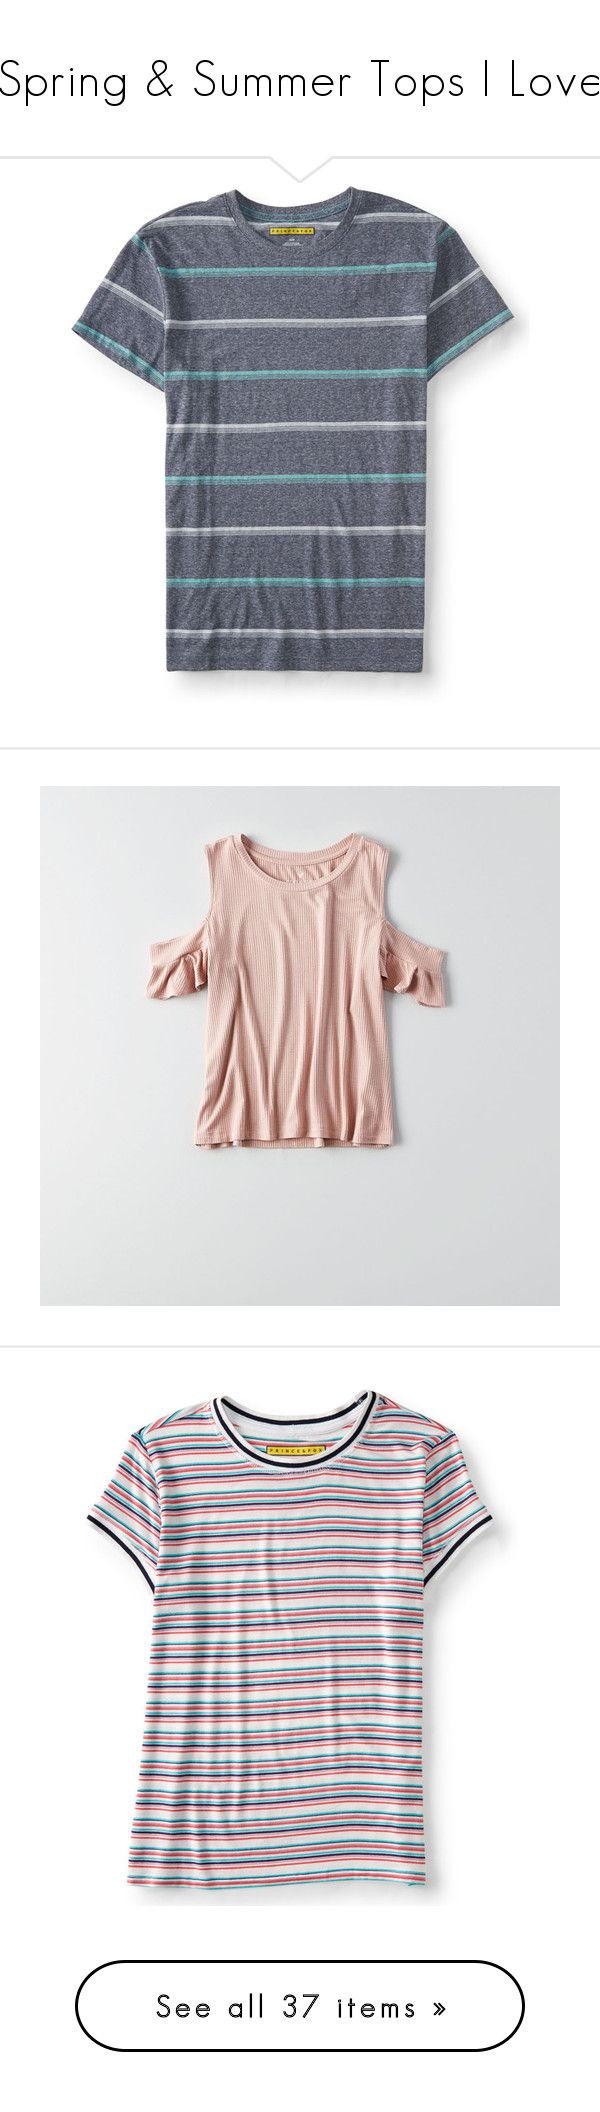 """""""Spring & Summer Tops I Love"""" by meredith-gomes on Polyvore featuring men's fashion, men's clothing, men's shirts, men's t-shirts, classic navy, mens navy blue t shirt, mens holiday t shirts, mens polyester t shirts, aeropostale mens shirts and colorful mens dress shirts"""